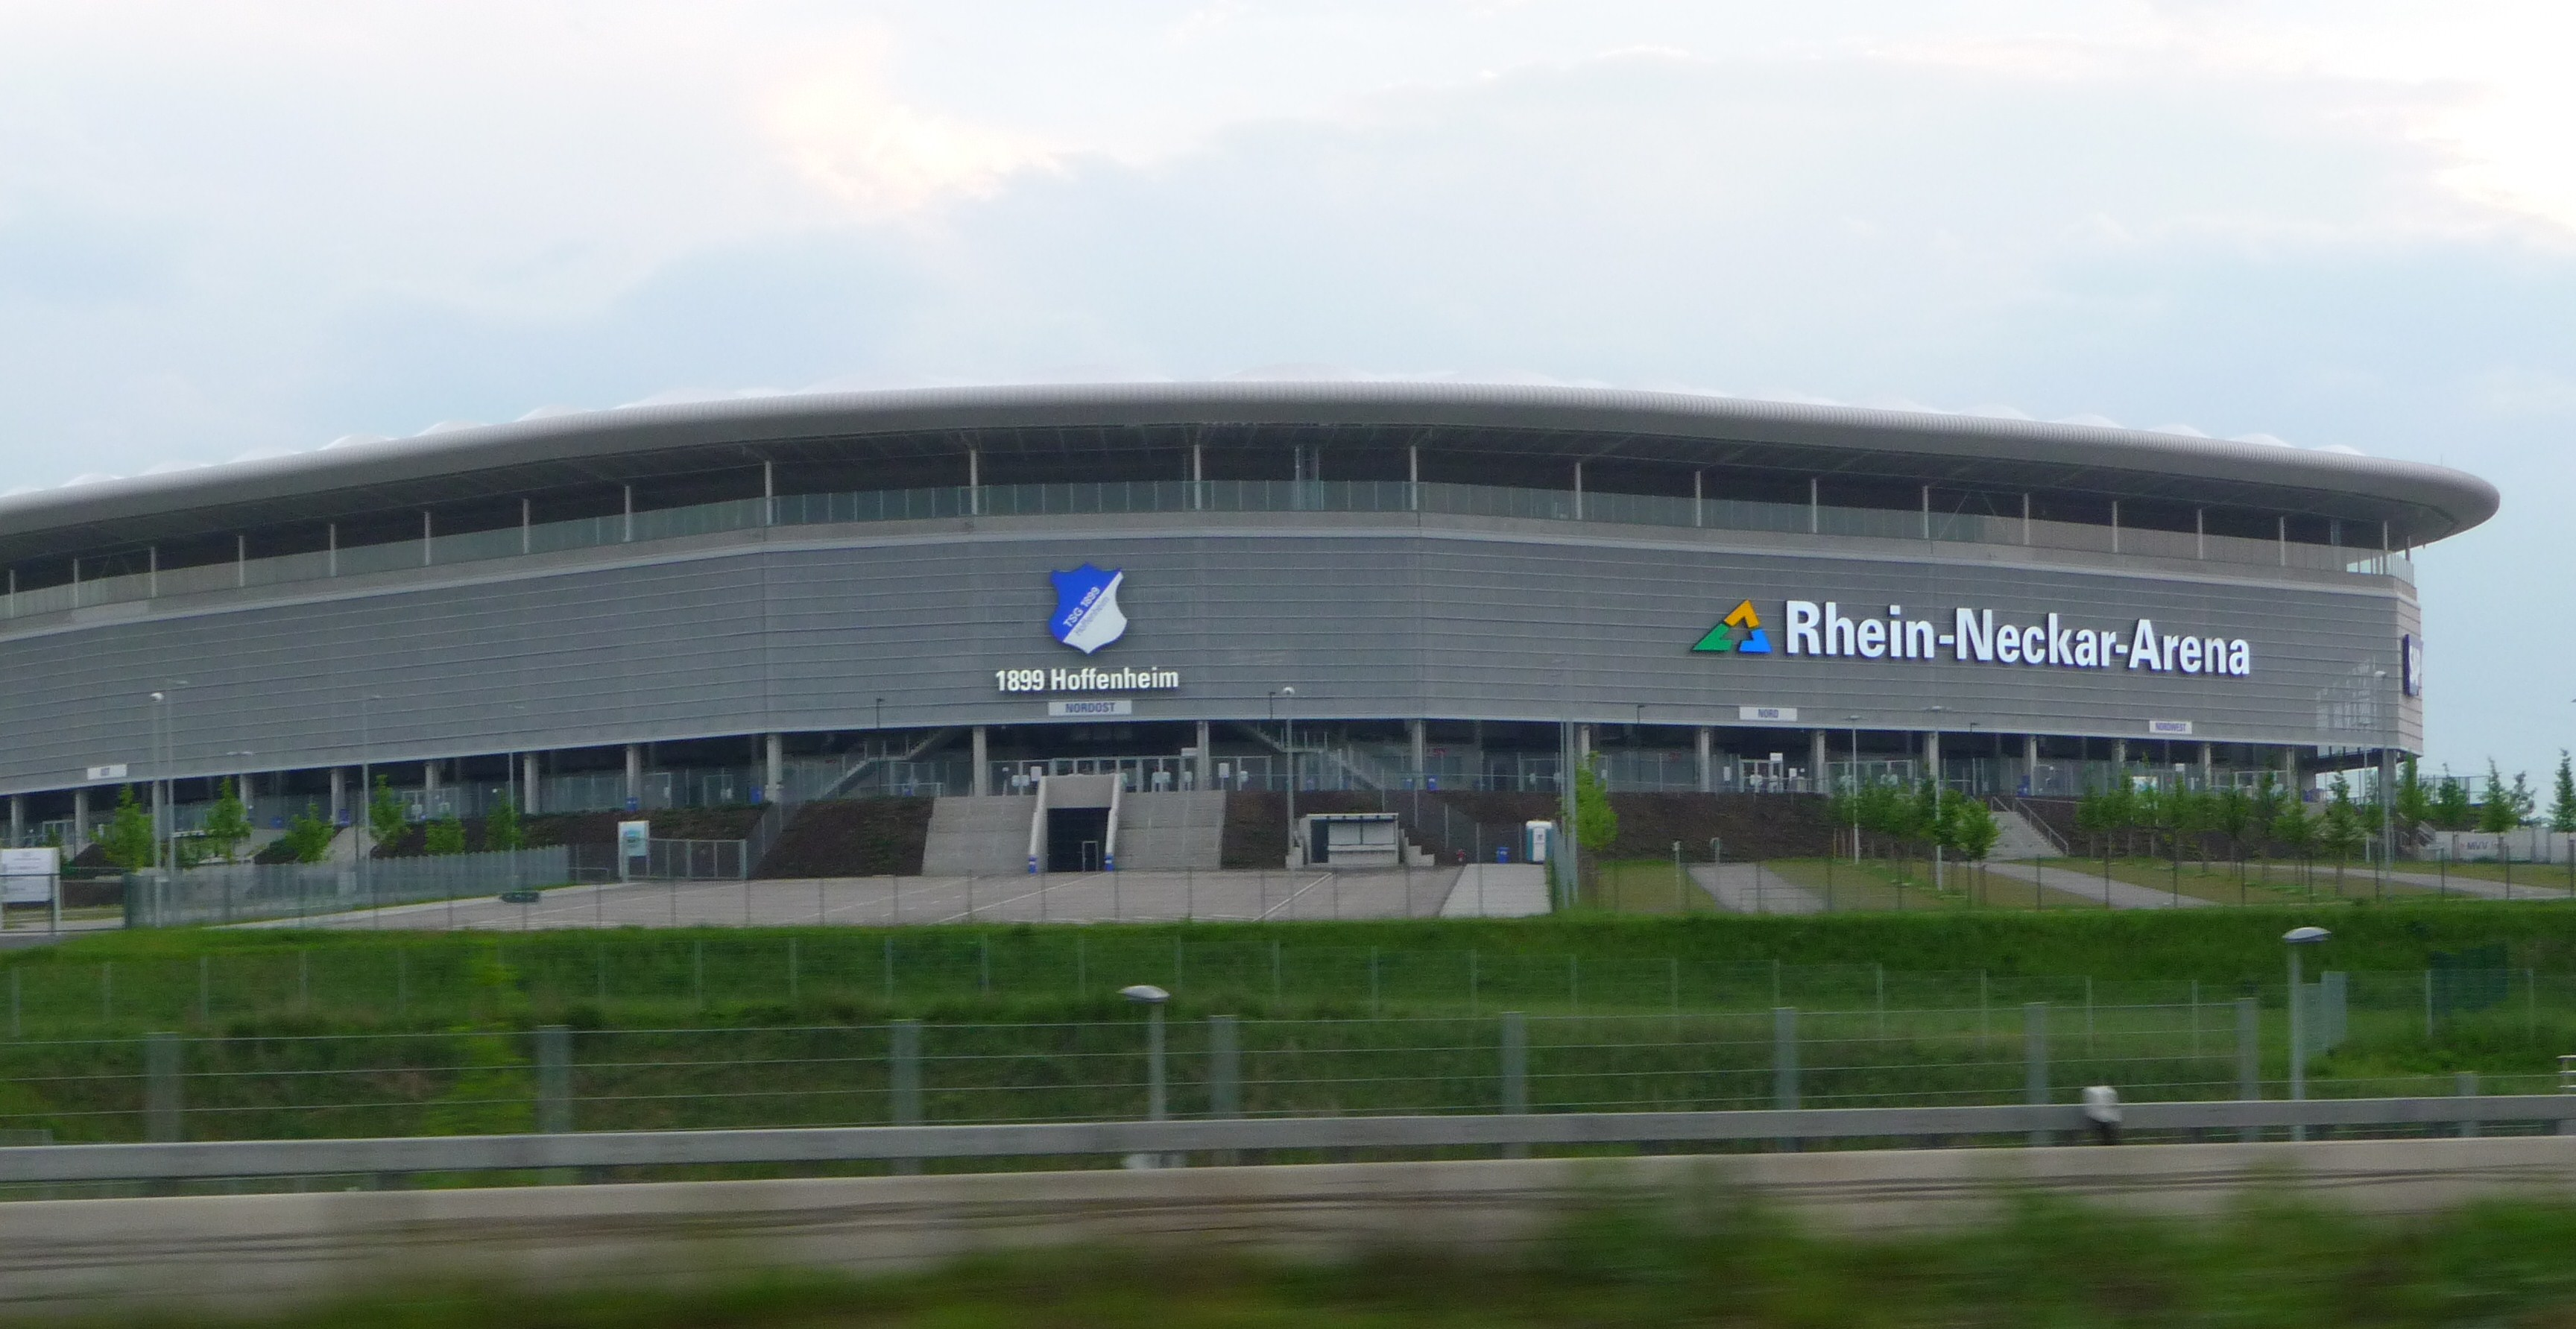 Map Of Germany Hoffenheim.Rhein Neckar Arena Wikipedia